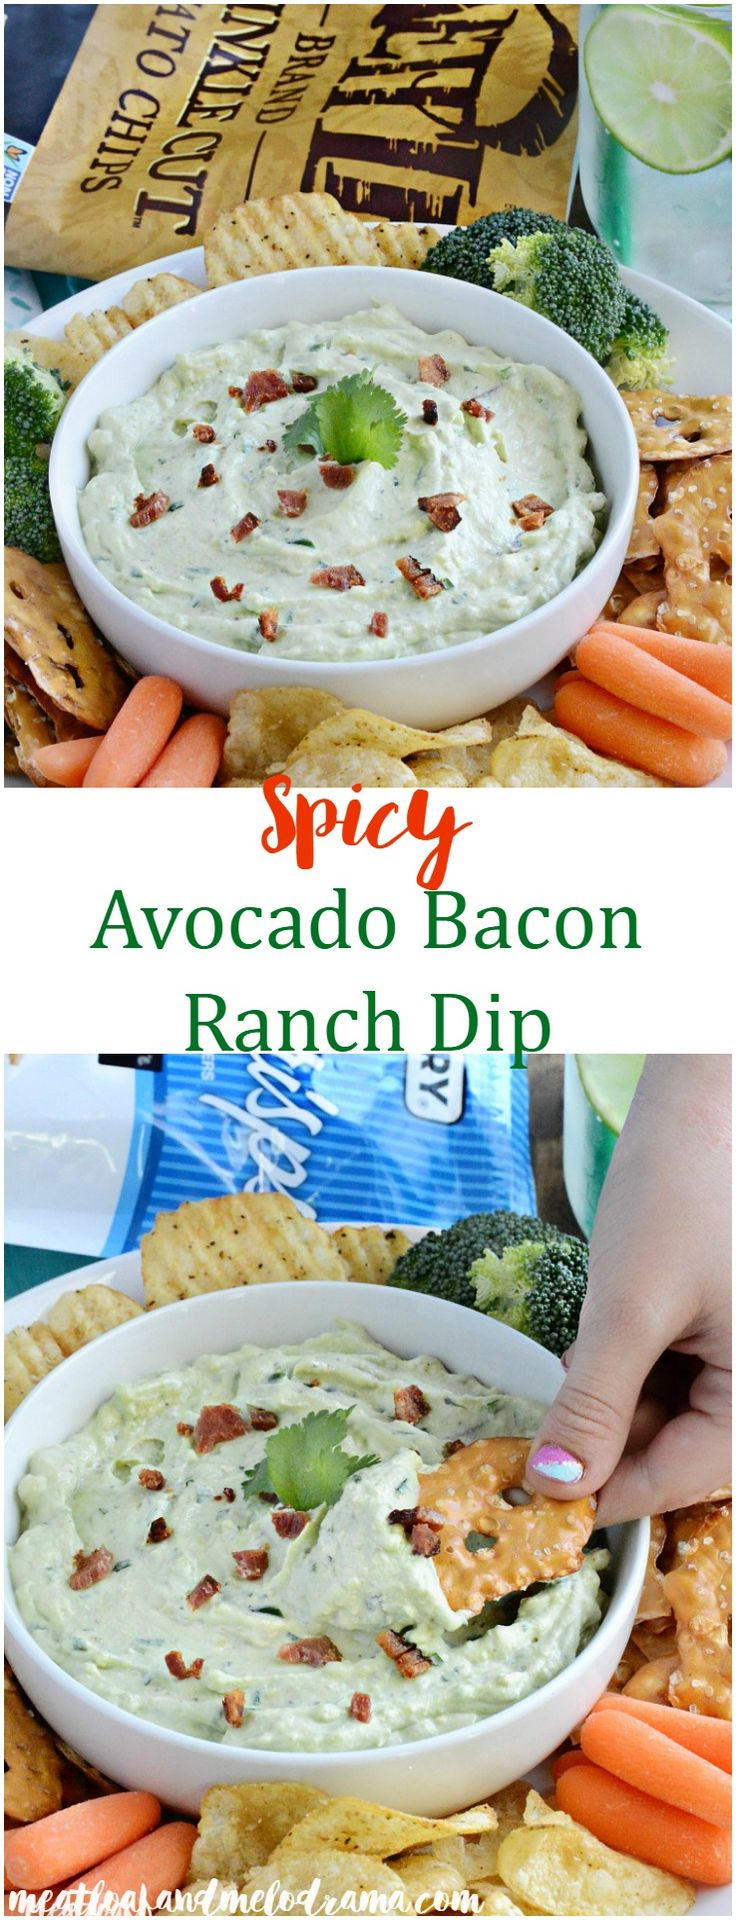 Spicy Avocado Bacon Ranch Dip - Make this flavorful dip in time for the big game! Your fans will love the recipe.